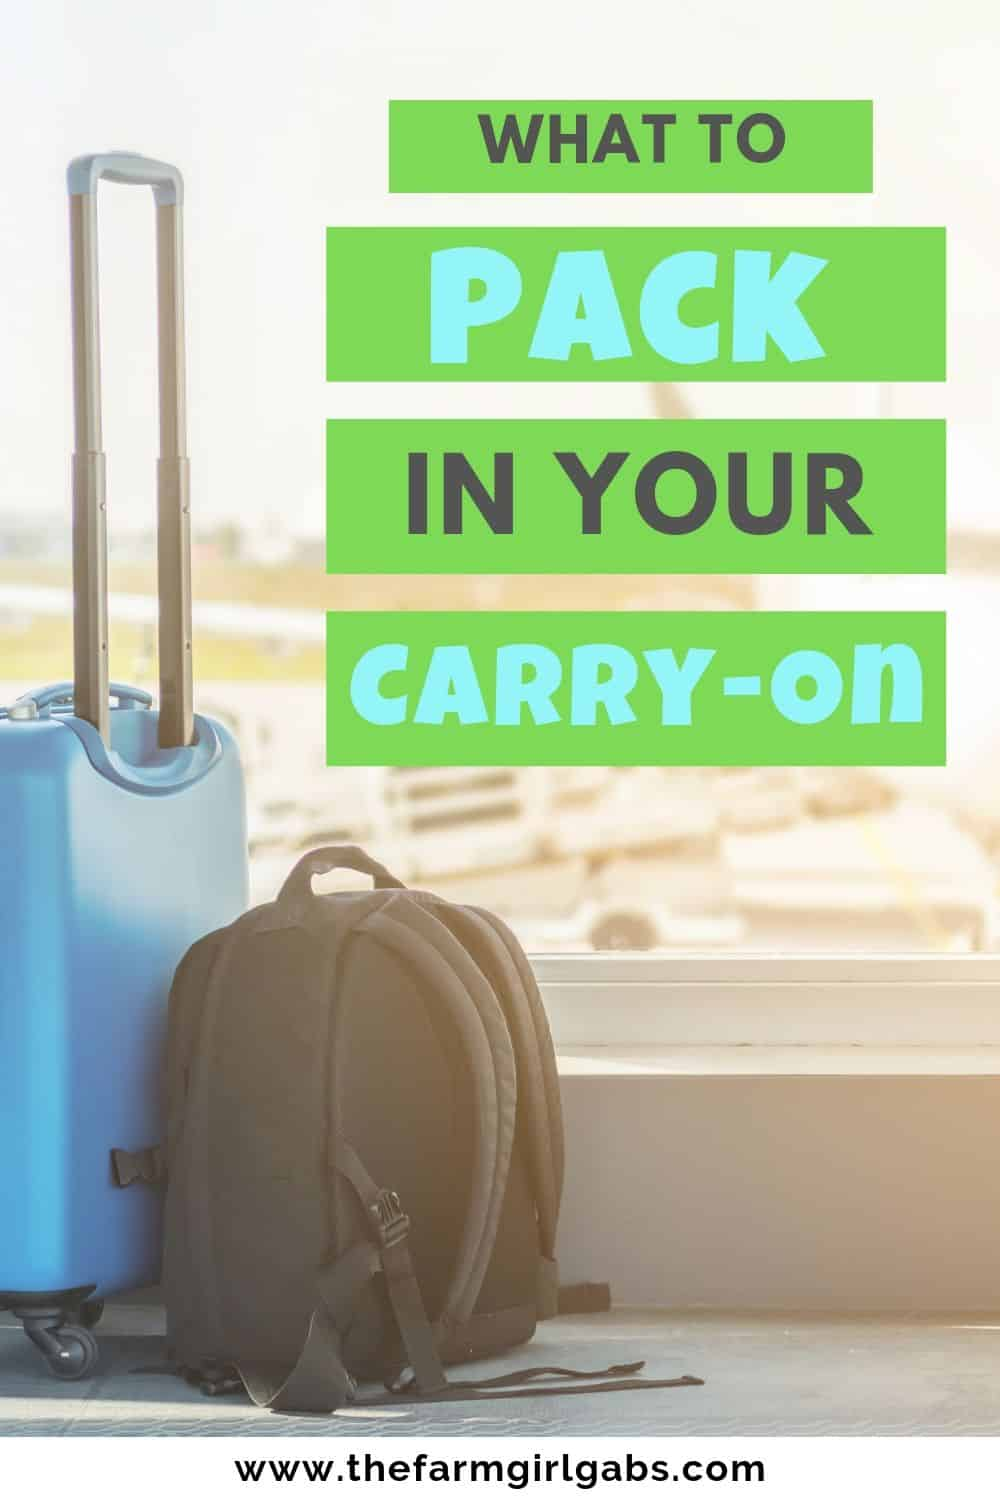 This Ultimate List of What To Pack In Your Carry-On Bag will help you be prepared with all In-Flight essentials to help you get to your destination in comfort and with everything you need! #packingtips #carryon #travel